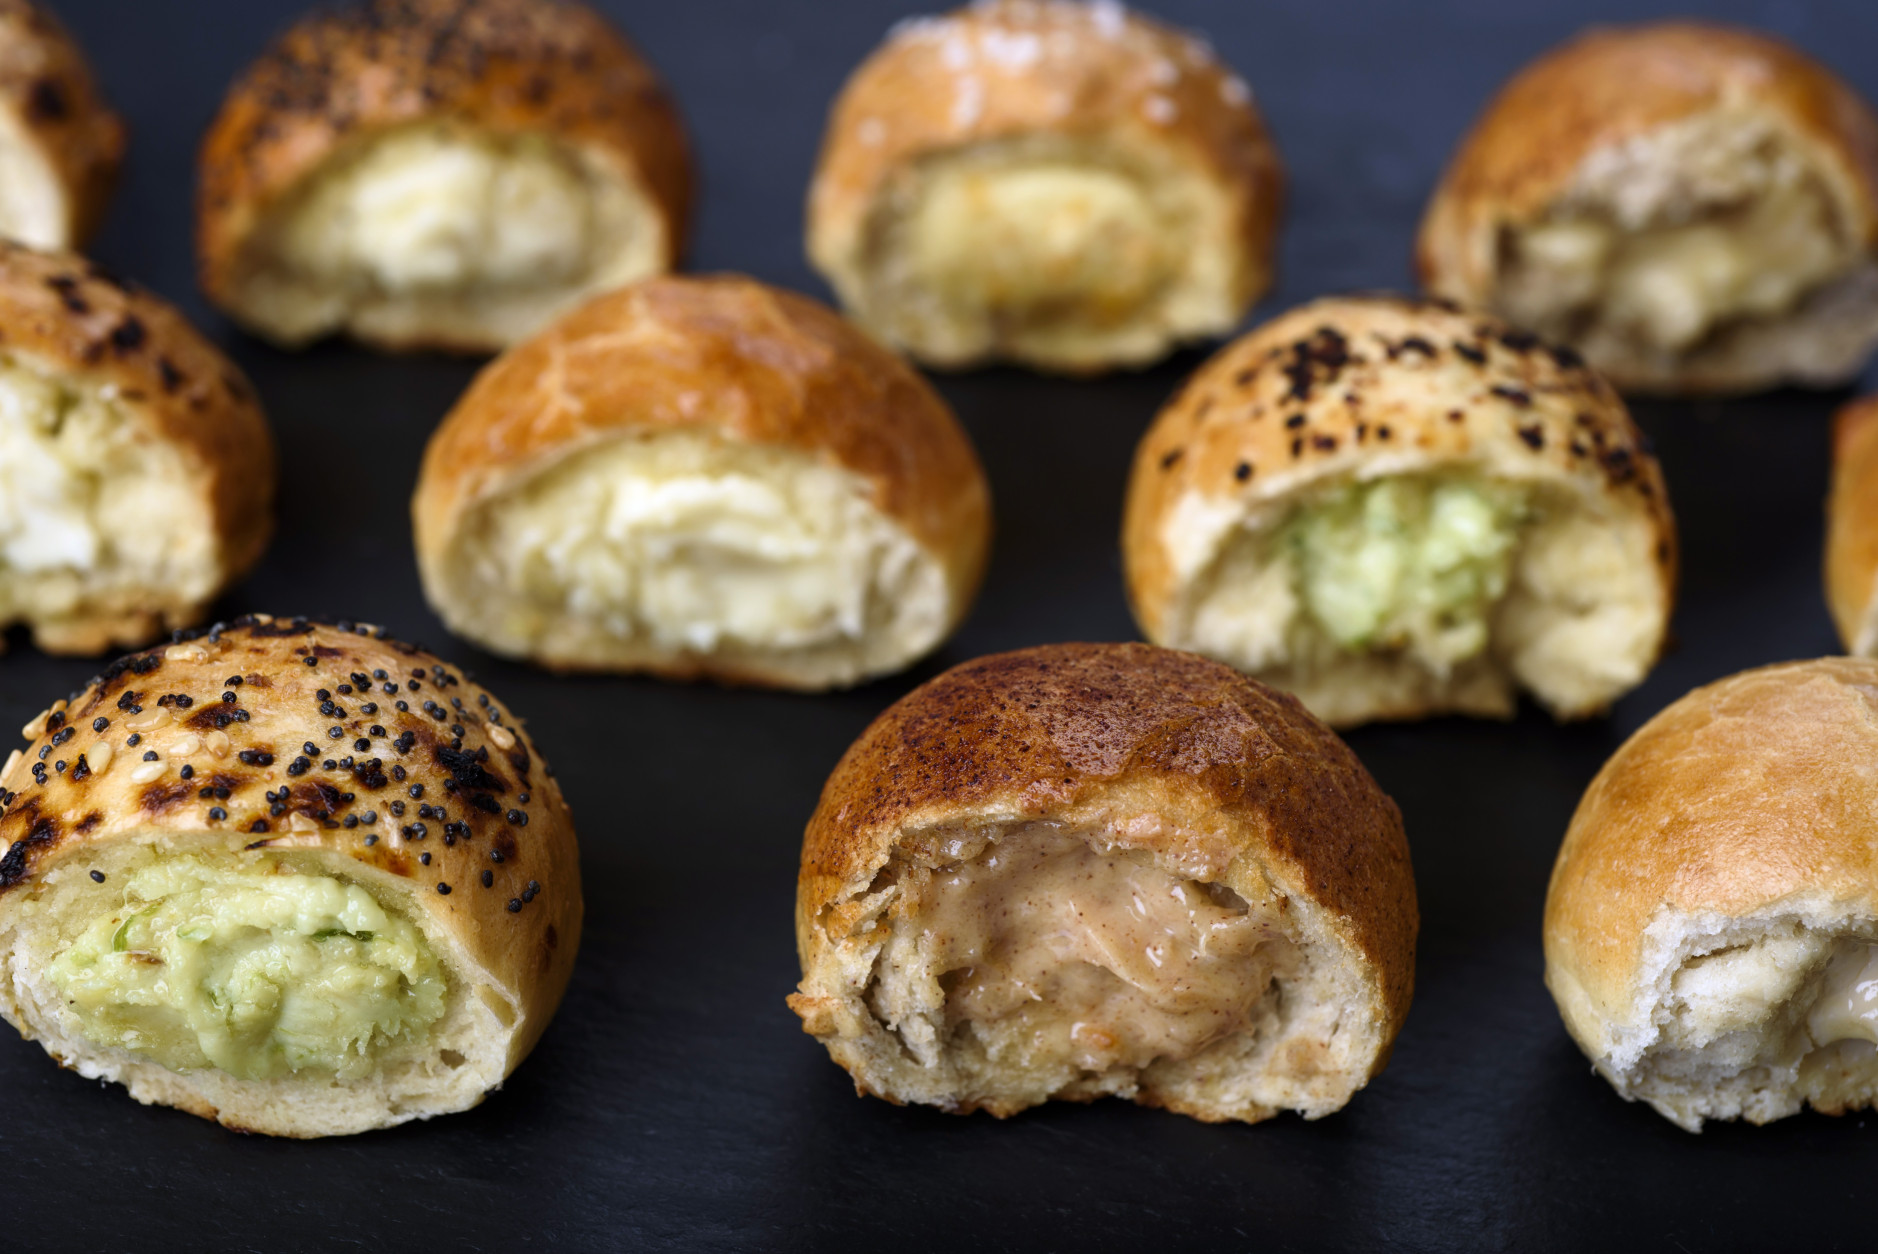 Bantam Bagels makes and sells bite-sized bagel balls, stuffed with cream cheese. The business started in New York's West Village and went national in September, 2016. (Photo by Karsten Moran, courtesy Bantam Bagels)